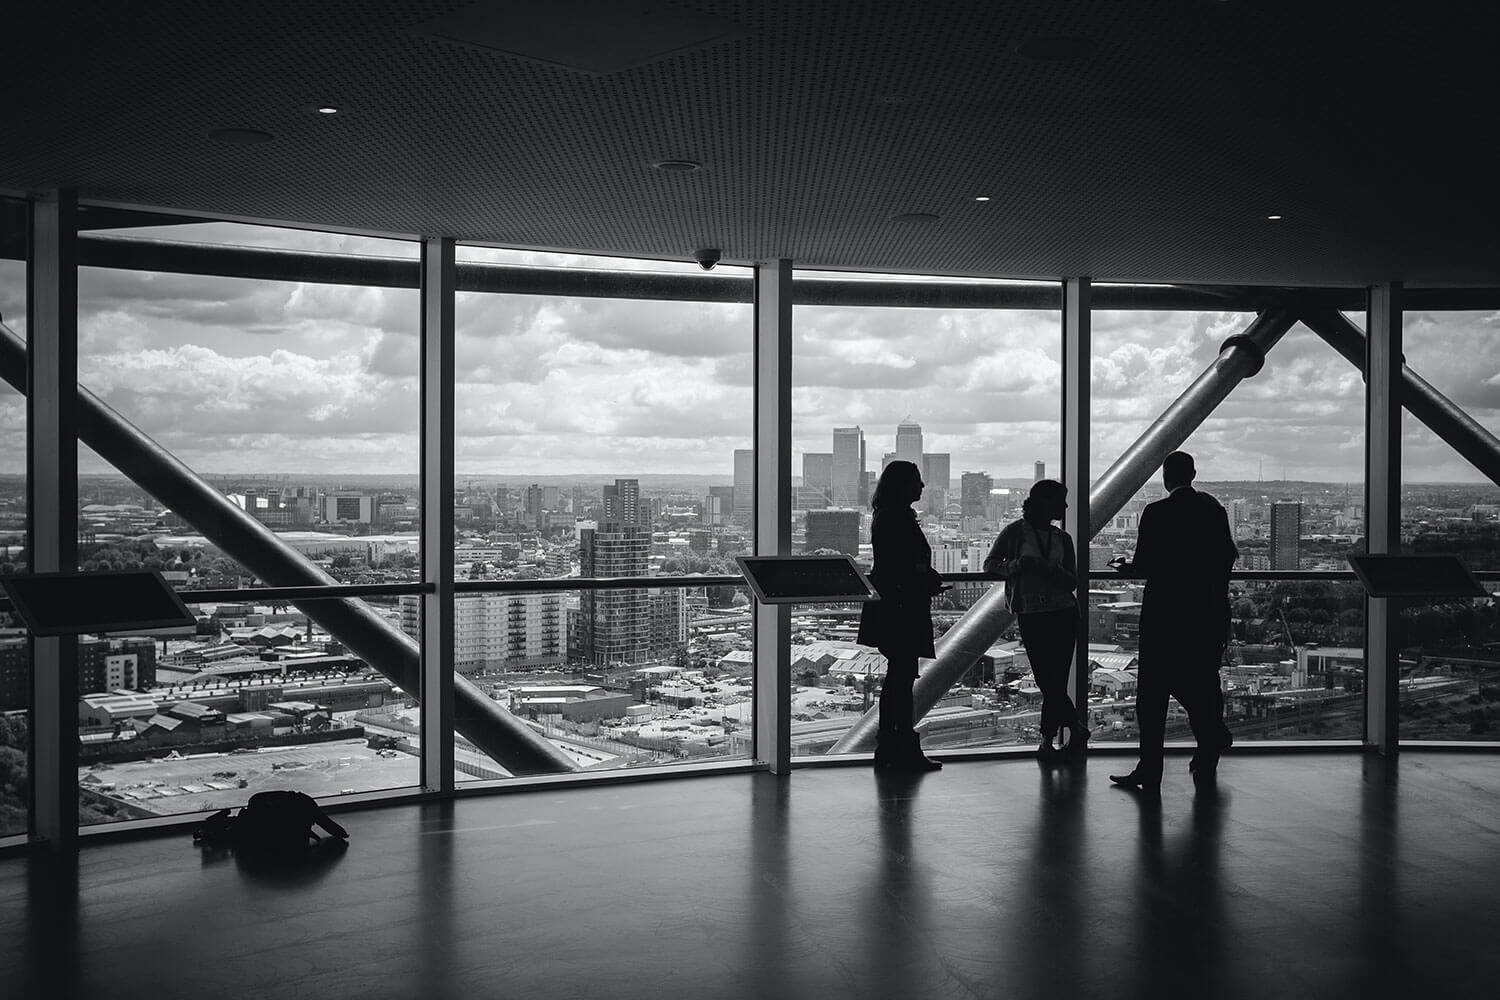 Silhouettes in front of a glass window in a city high rise